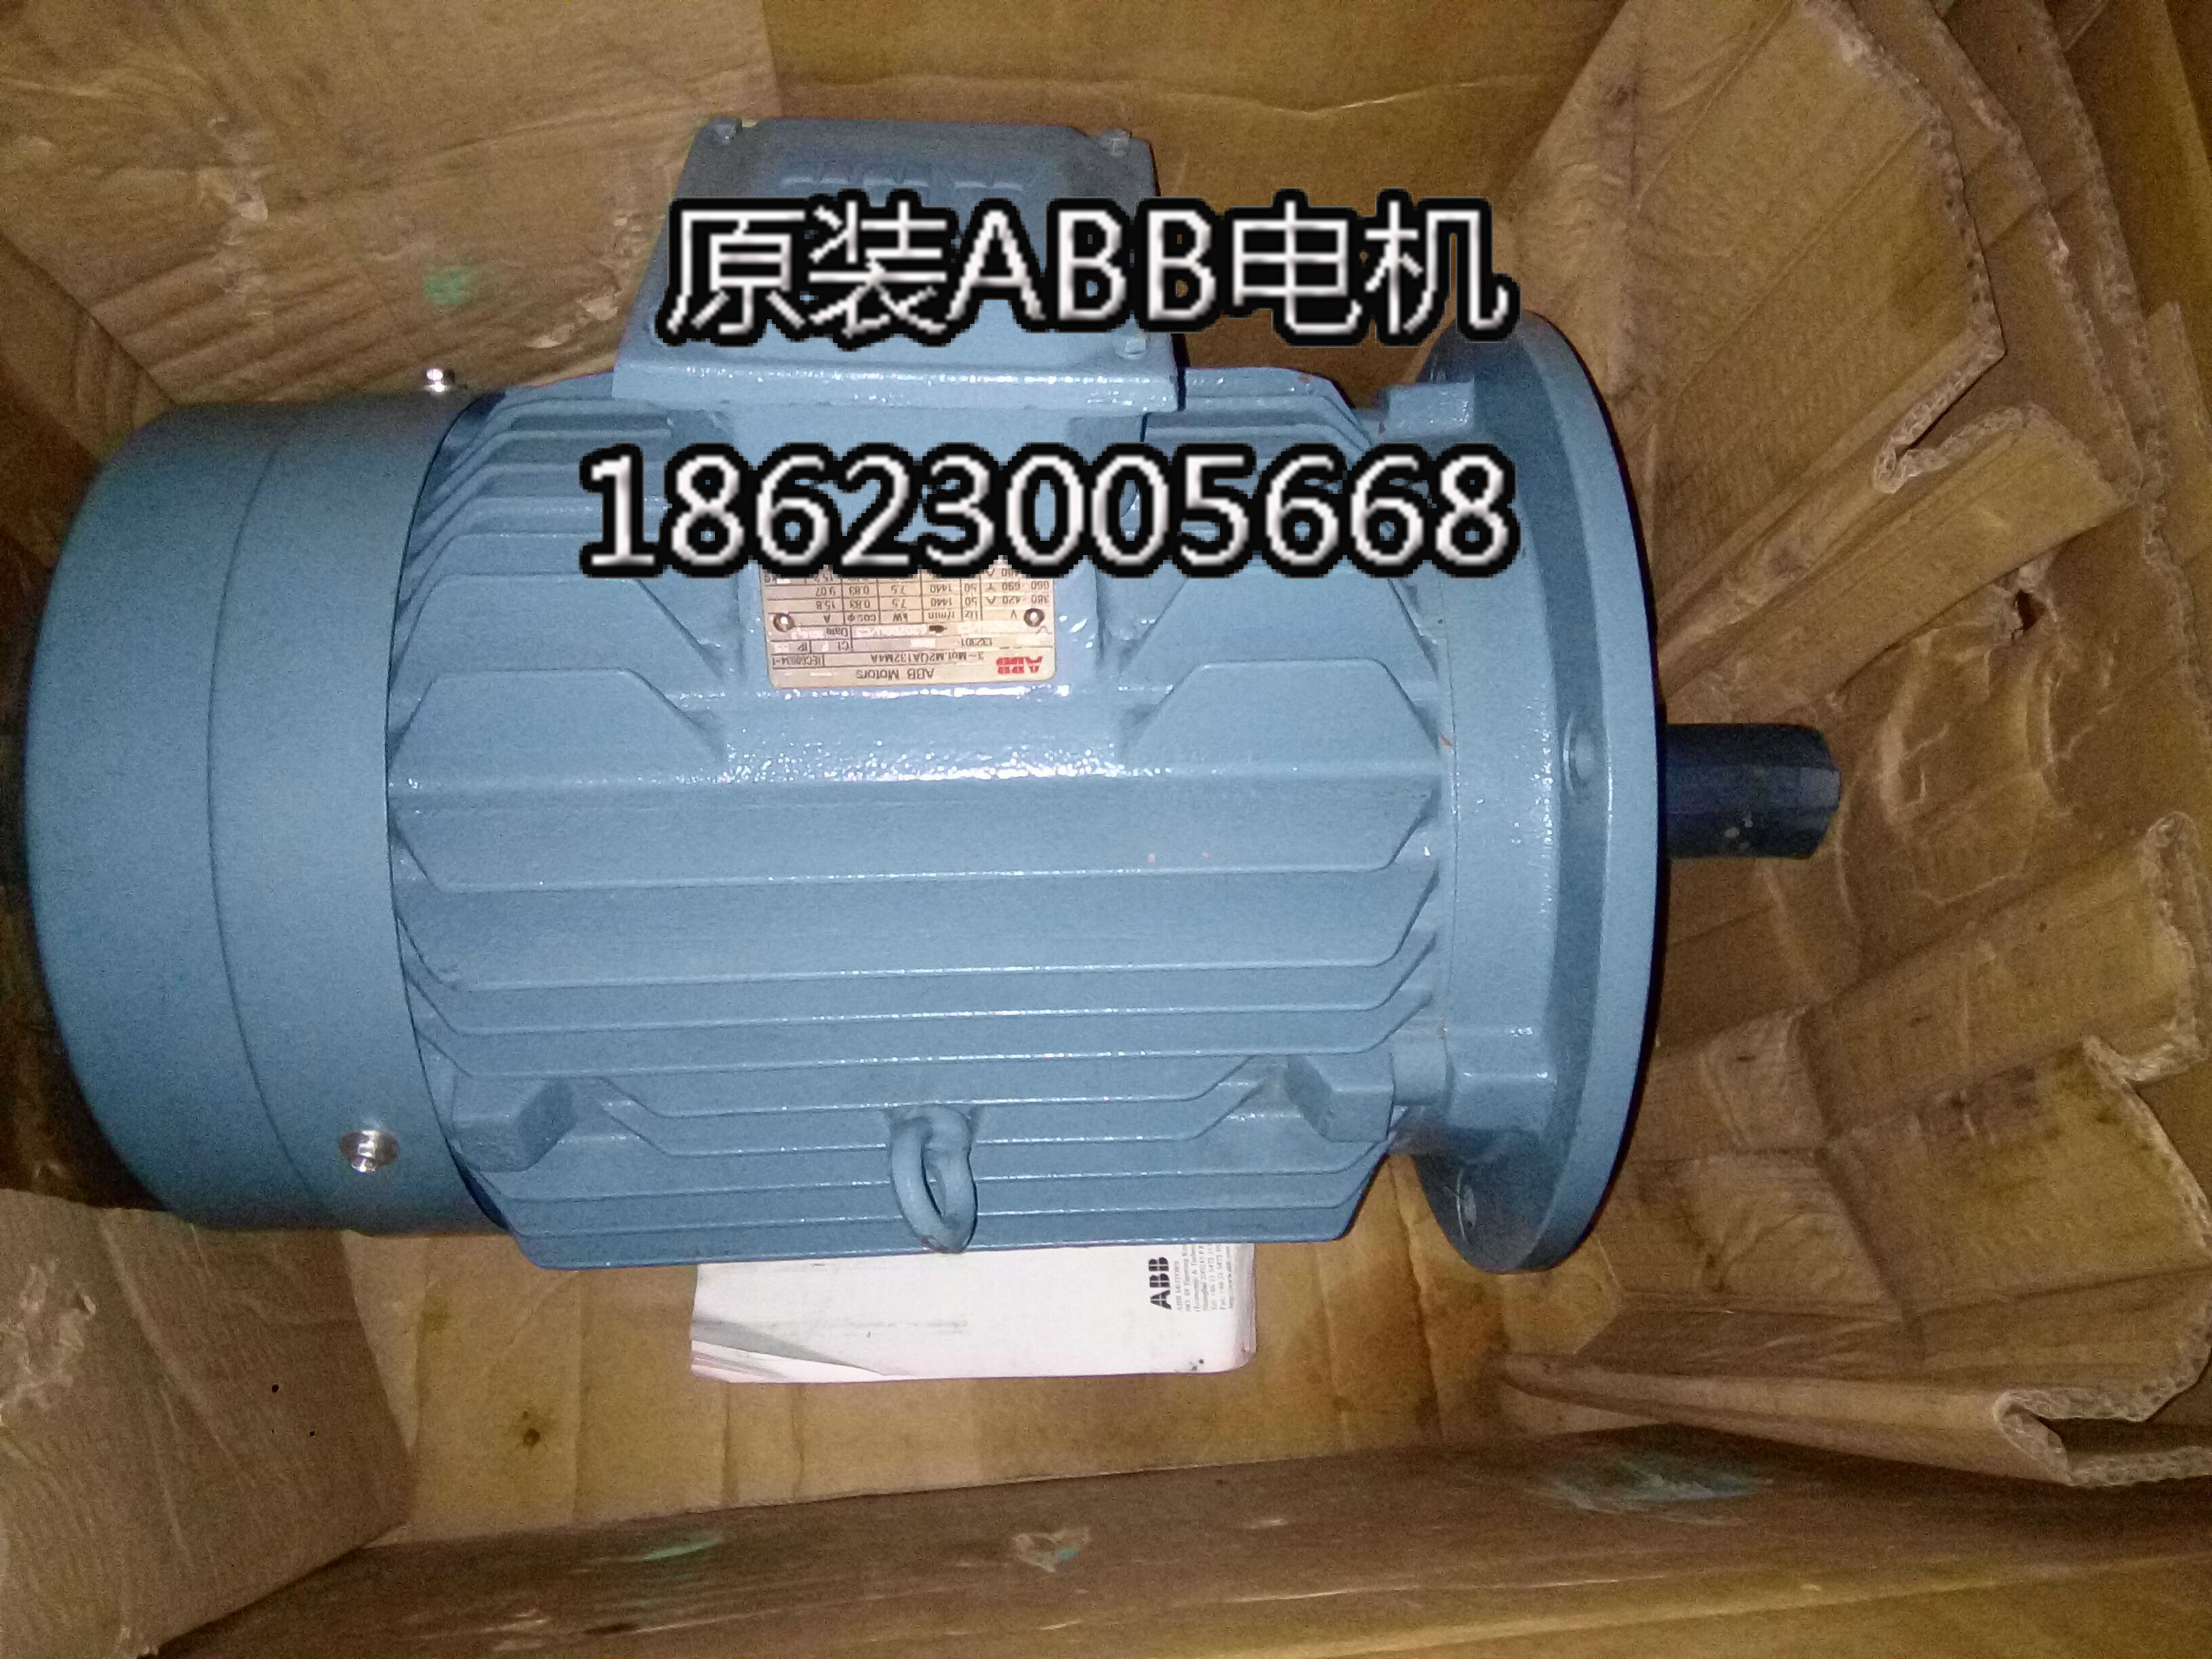 USD 17240.80] Original ABB three-phase induction motor M2QA3 55M6A ...